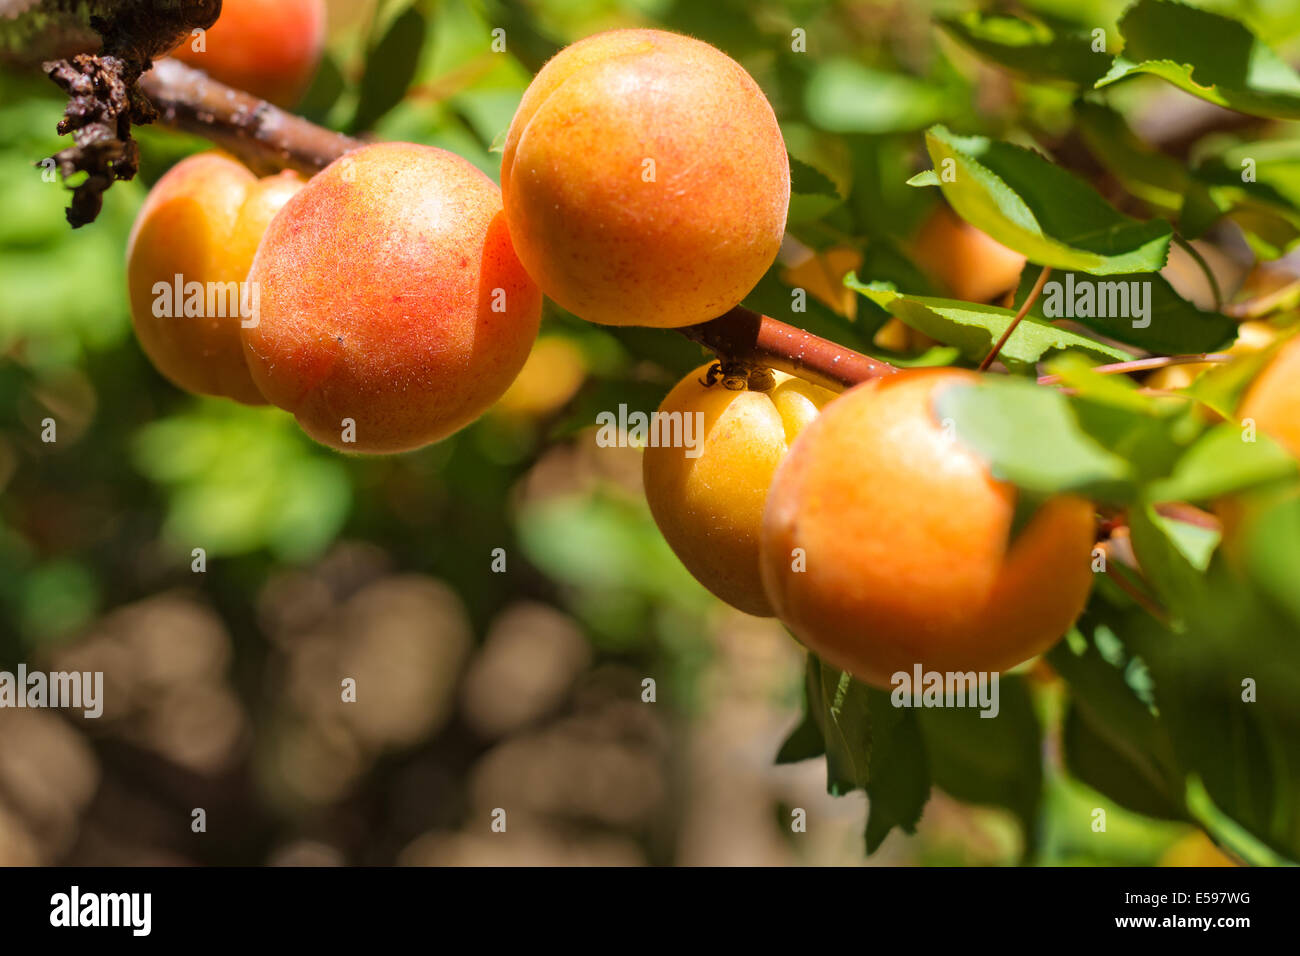 An apricot tree branch with ripe apricots. Selective focus. - Stock Image